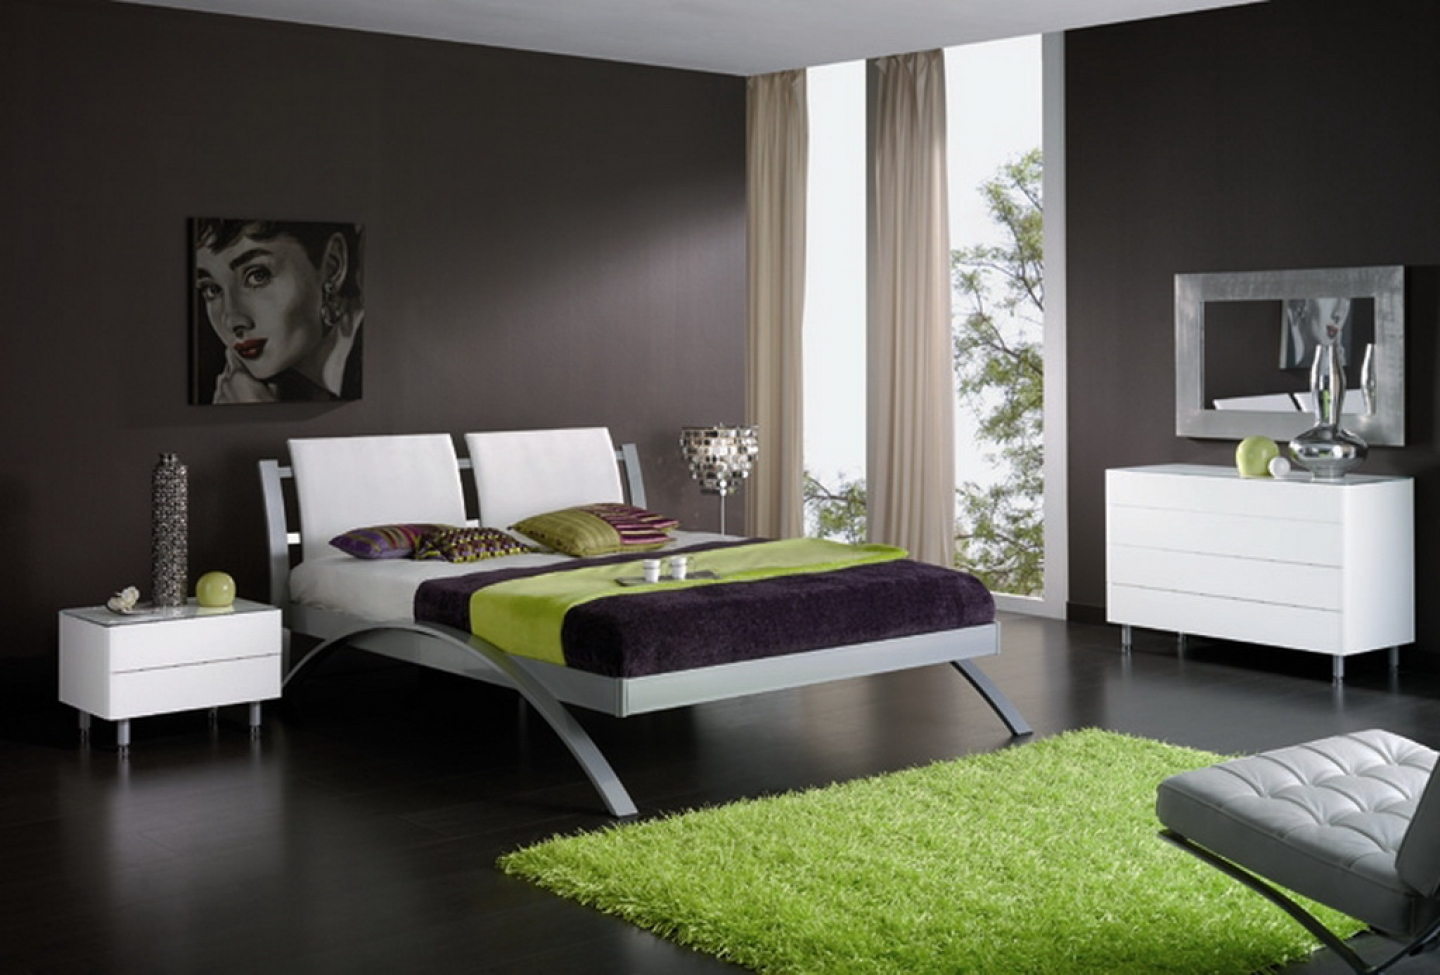 Bedroom Dazzling Black Themed Minimalist Bedroom Design